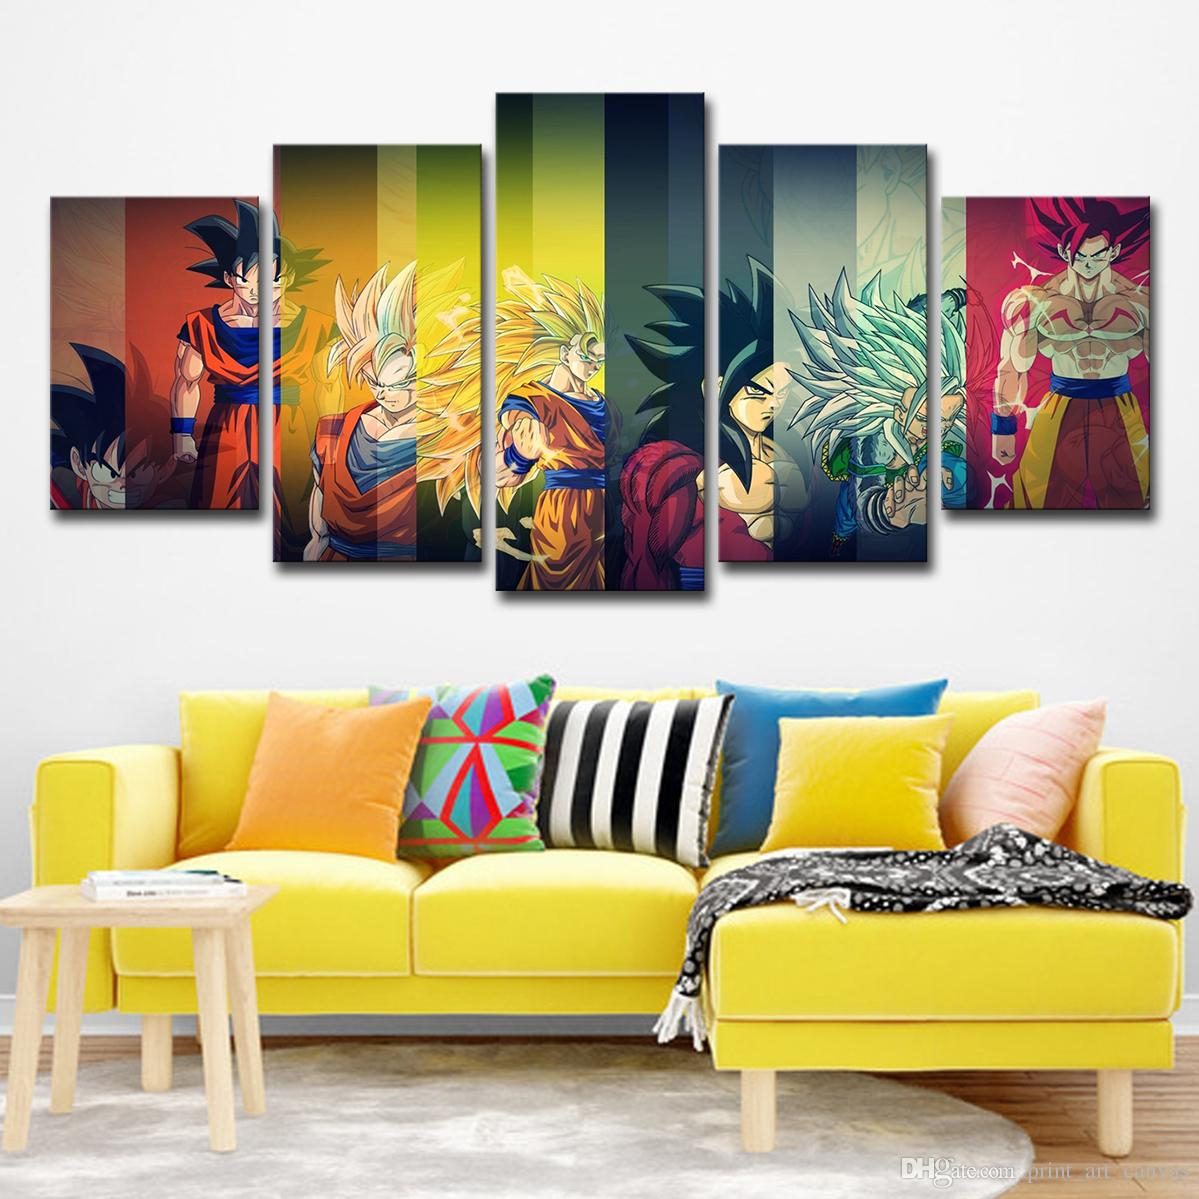 Canvas prints pictures 5 pieces color dragon ball z painting home decor anime super saiyan poster living room wall art